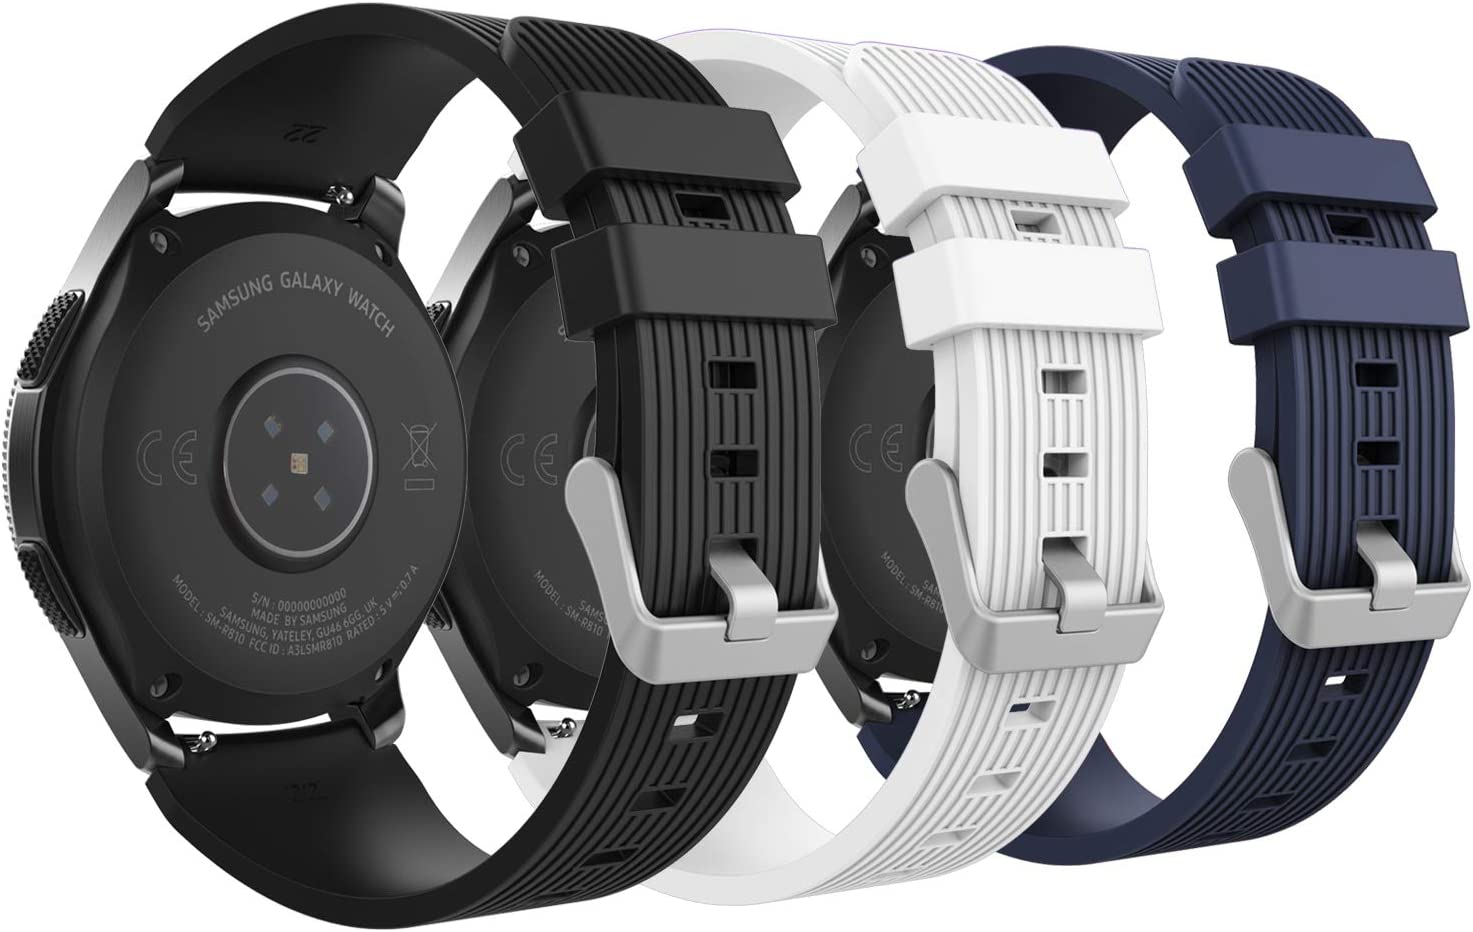 MoKo [3-Pack Band Compatible with Samsung Galaxy Watch 3 45mm/Galaxy Watch 46mm/Gear S3 Classic/Huawei Watch GT 2 Pro/GT 2e 46mm/Ticwatch Pro 3, 22mm Silicone Strap,Black&White&Midnight Blue